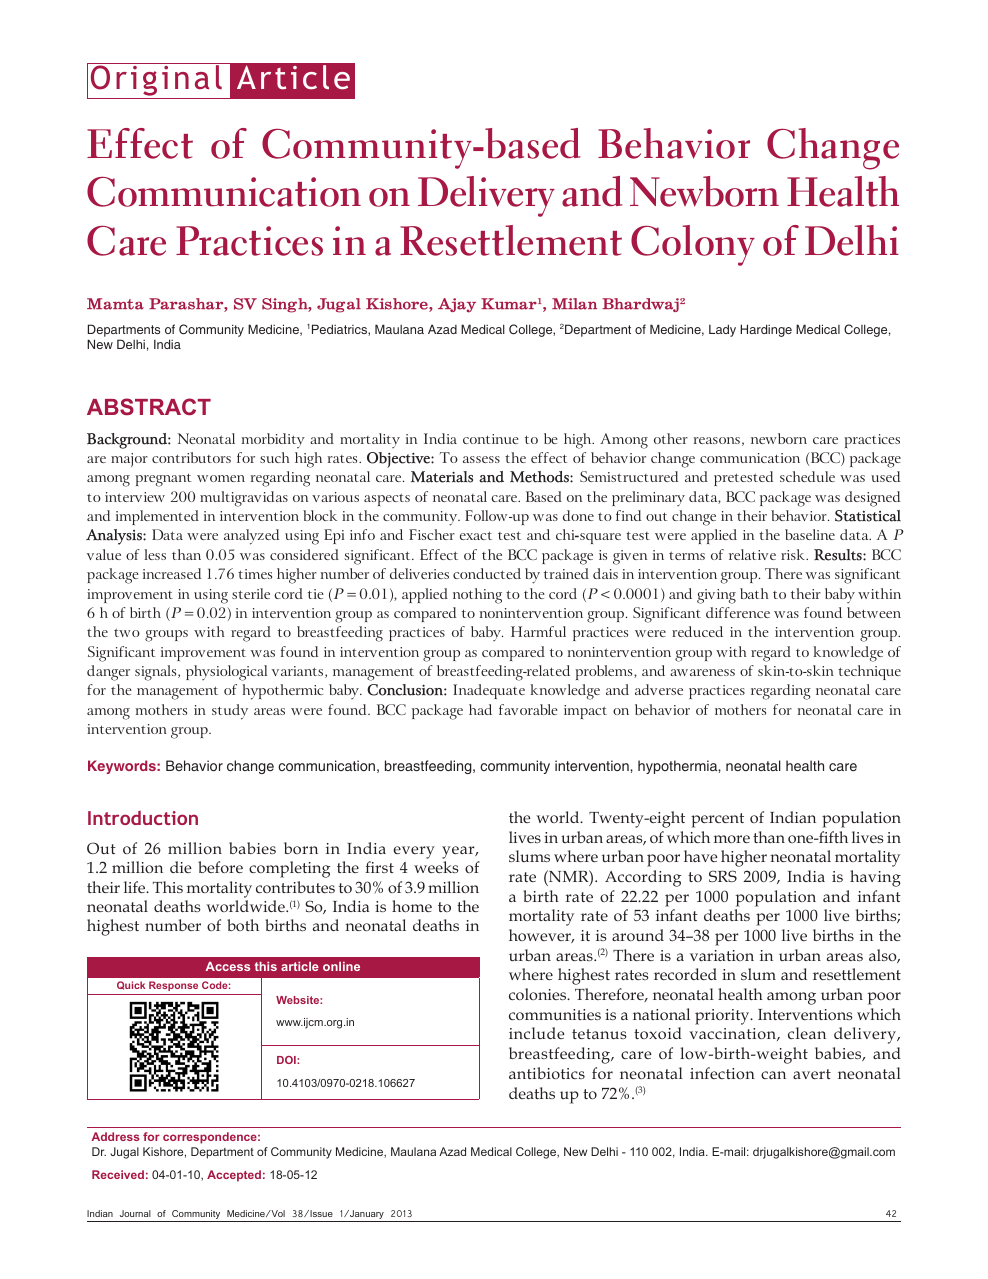 Effect of community-based behavior change communication on